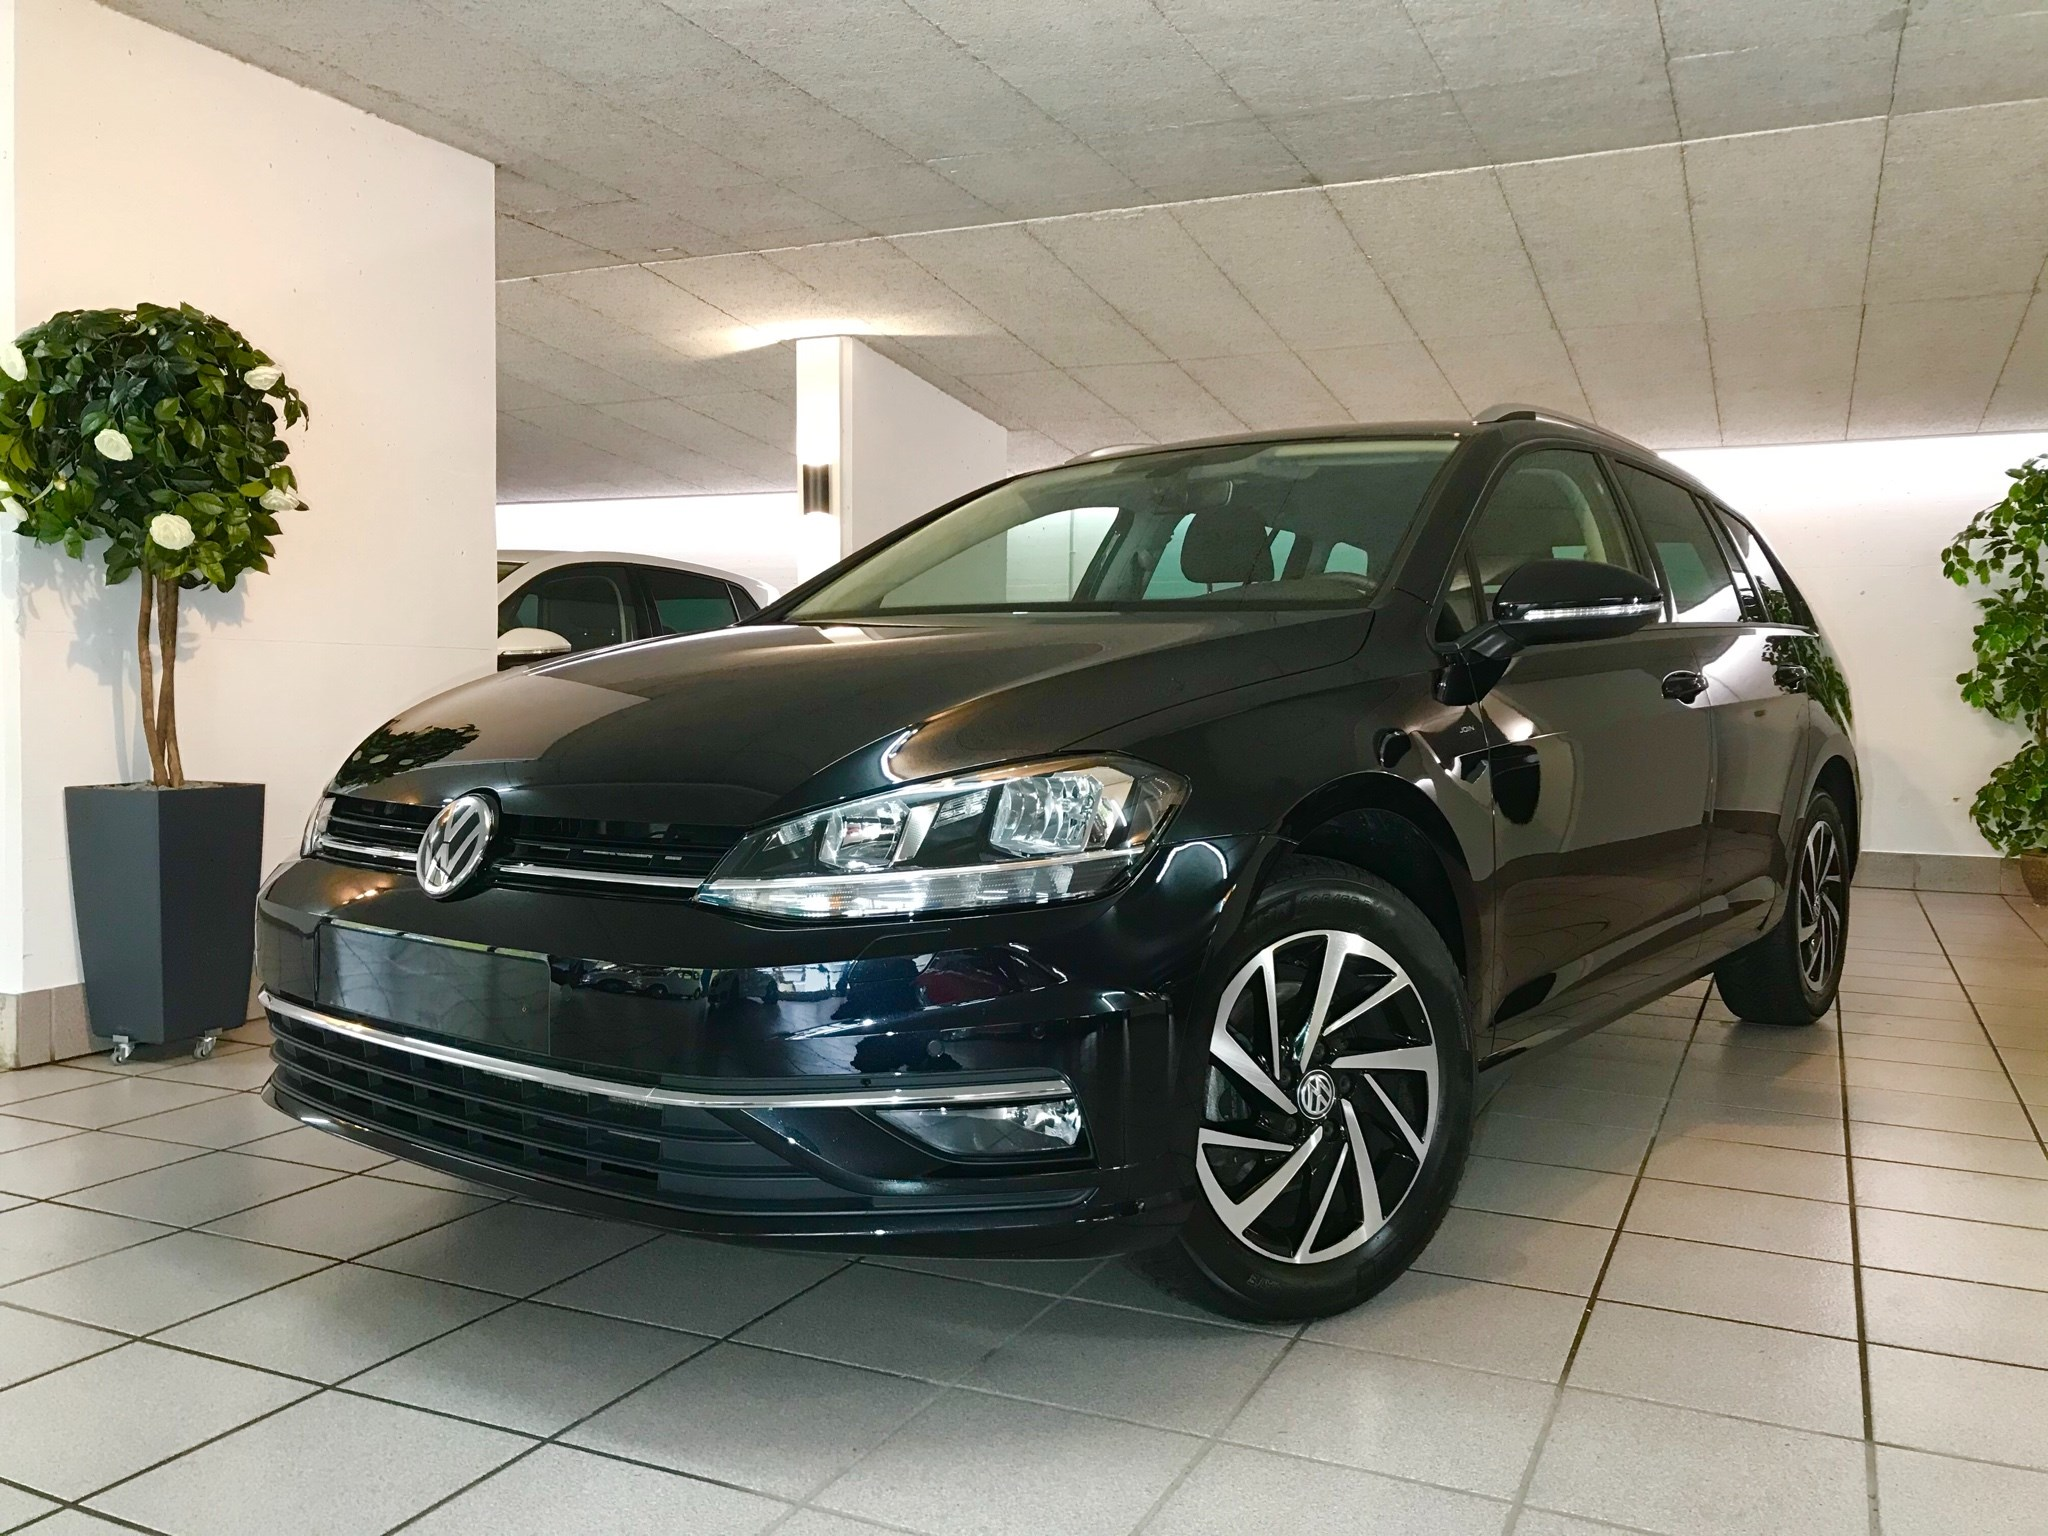 estate VW Golf Variant 1.6 TDI Comfortline DSG